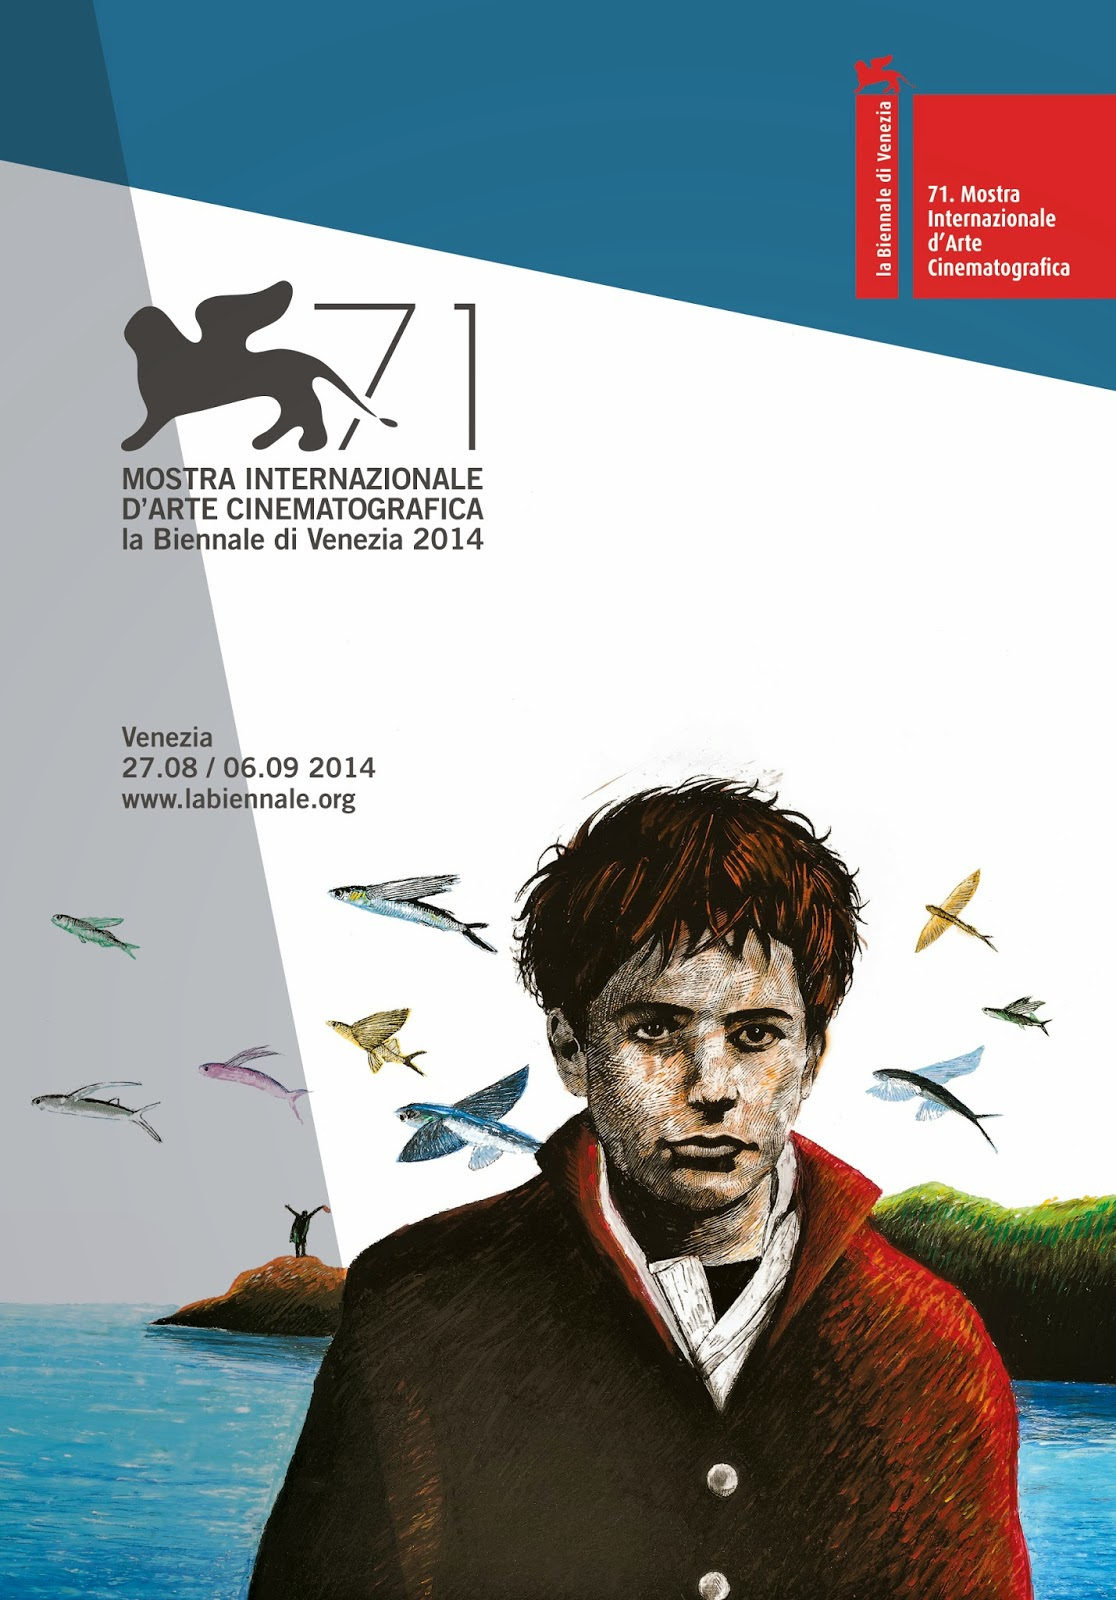 5 THINGS TO LOOK OUT FOR AT THE VENICE FILM FESTIVAL